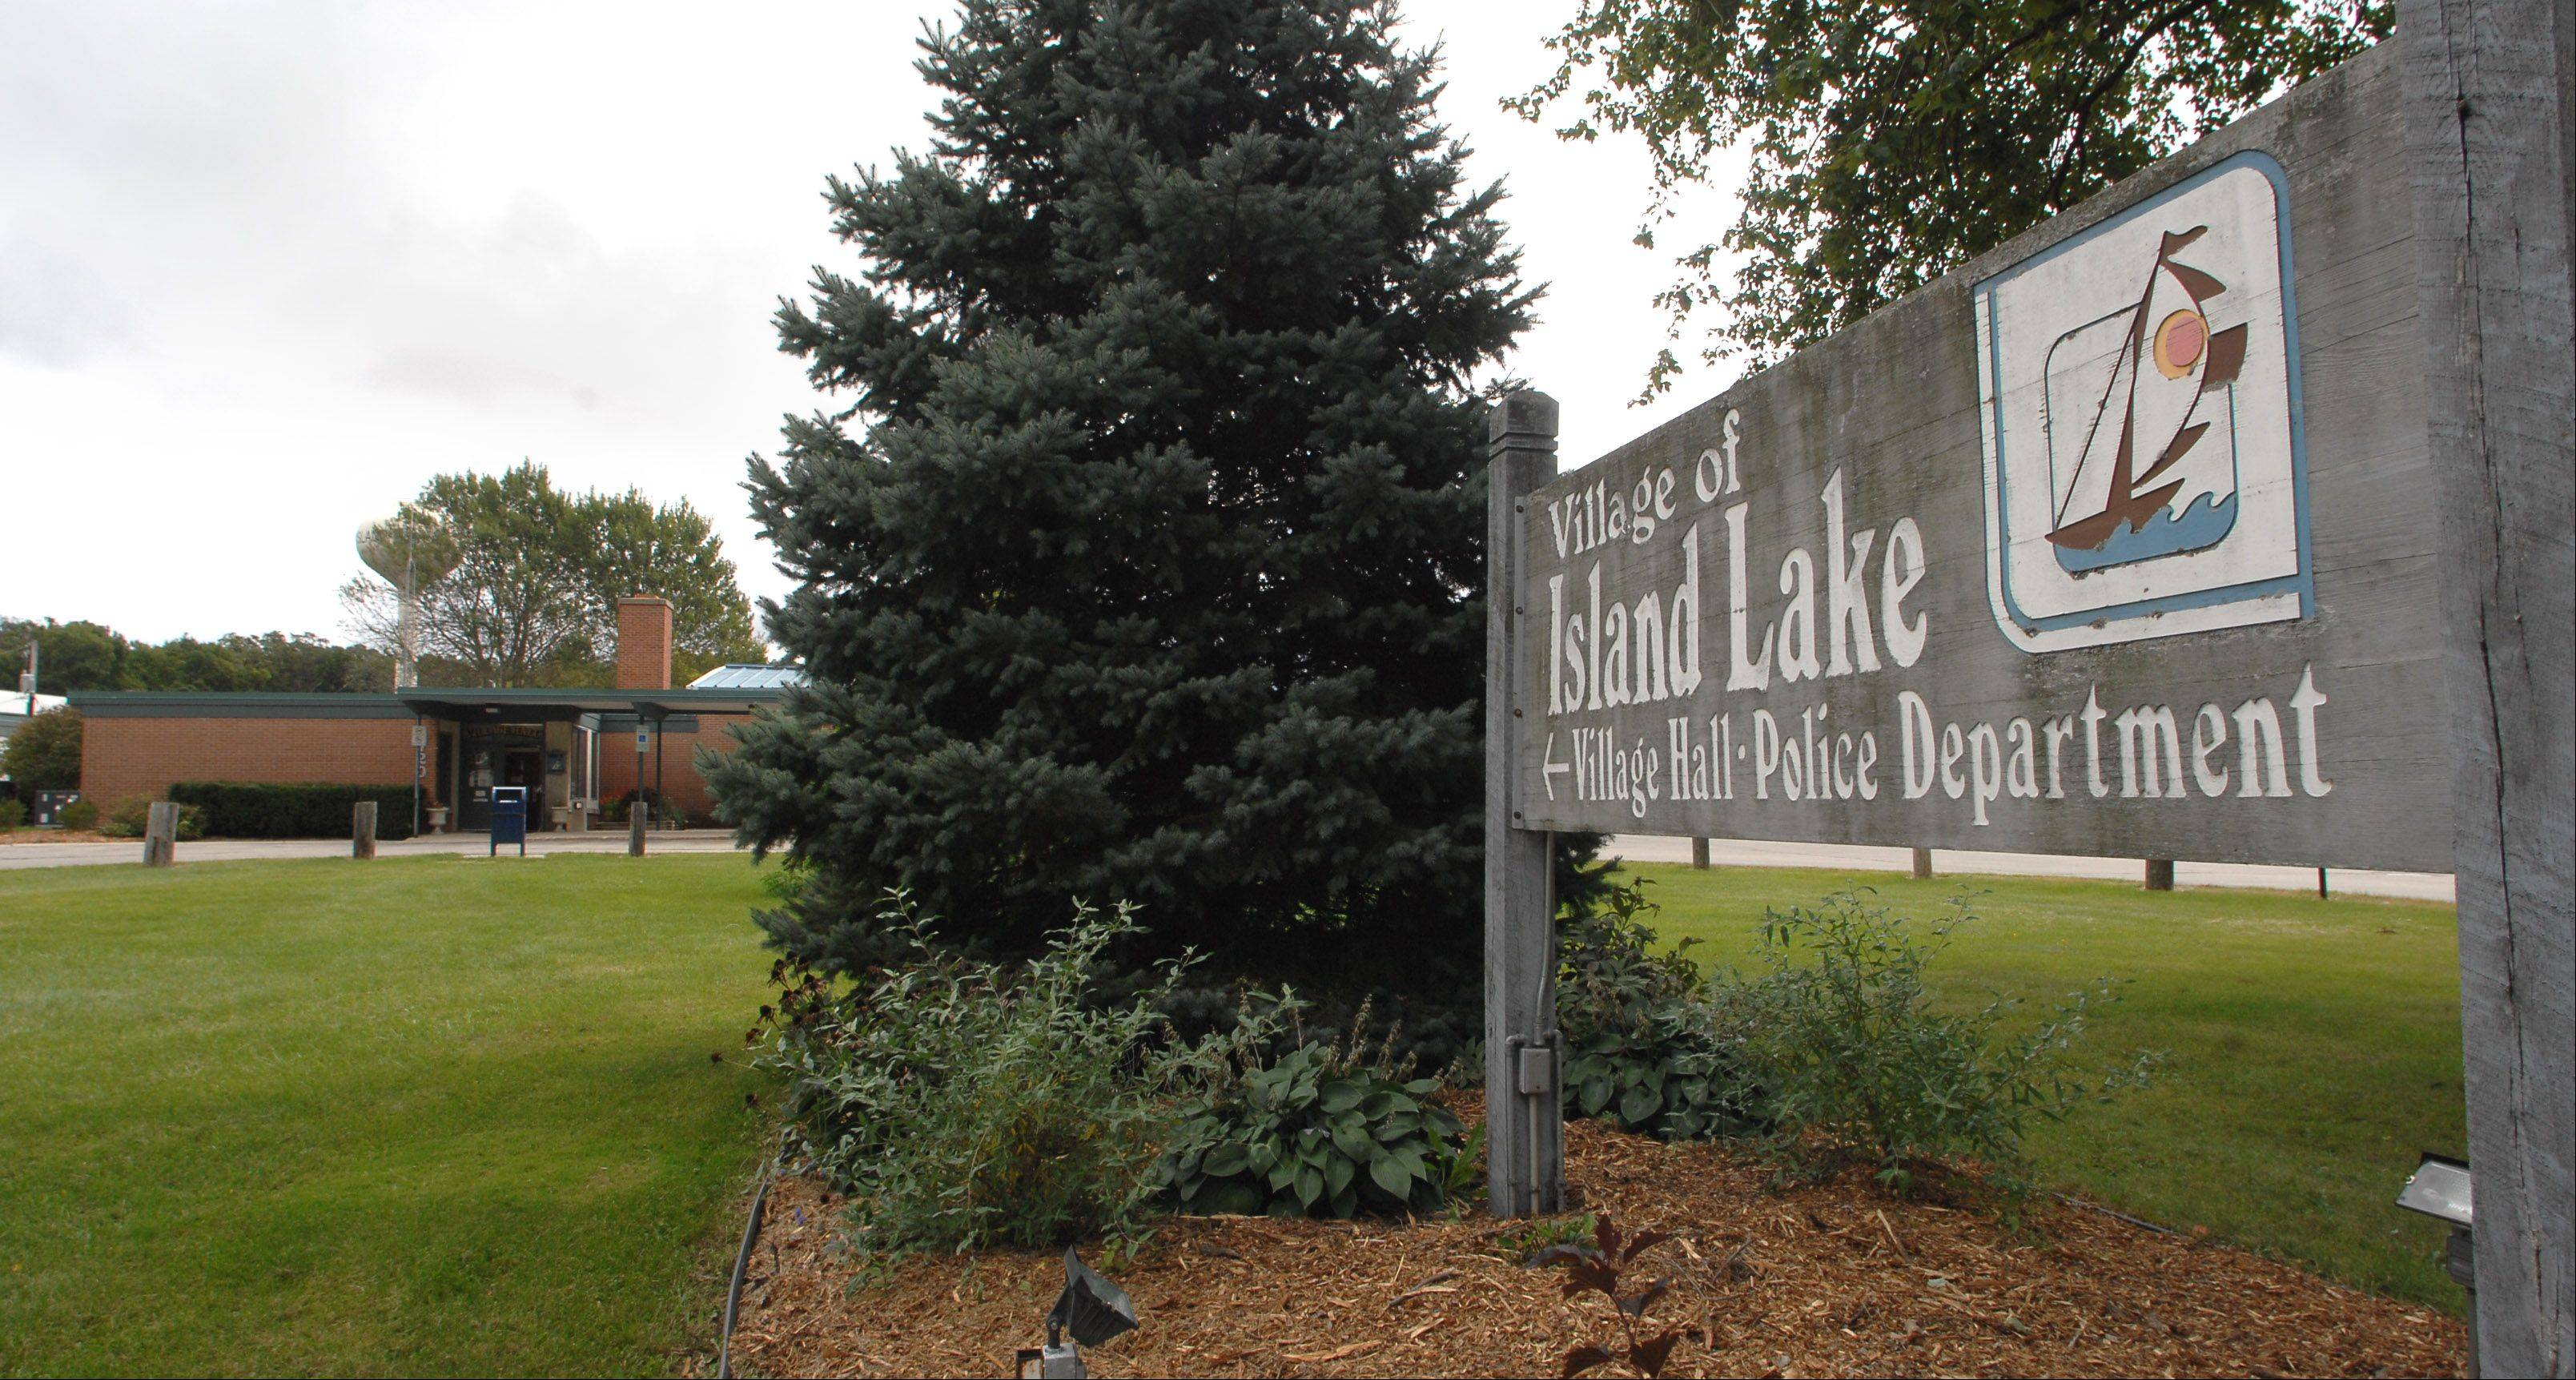 Island Lake to handle some tickets locally with administrative hearings